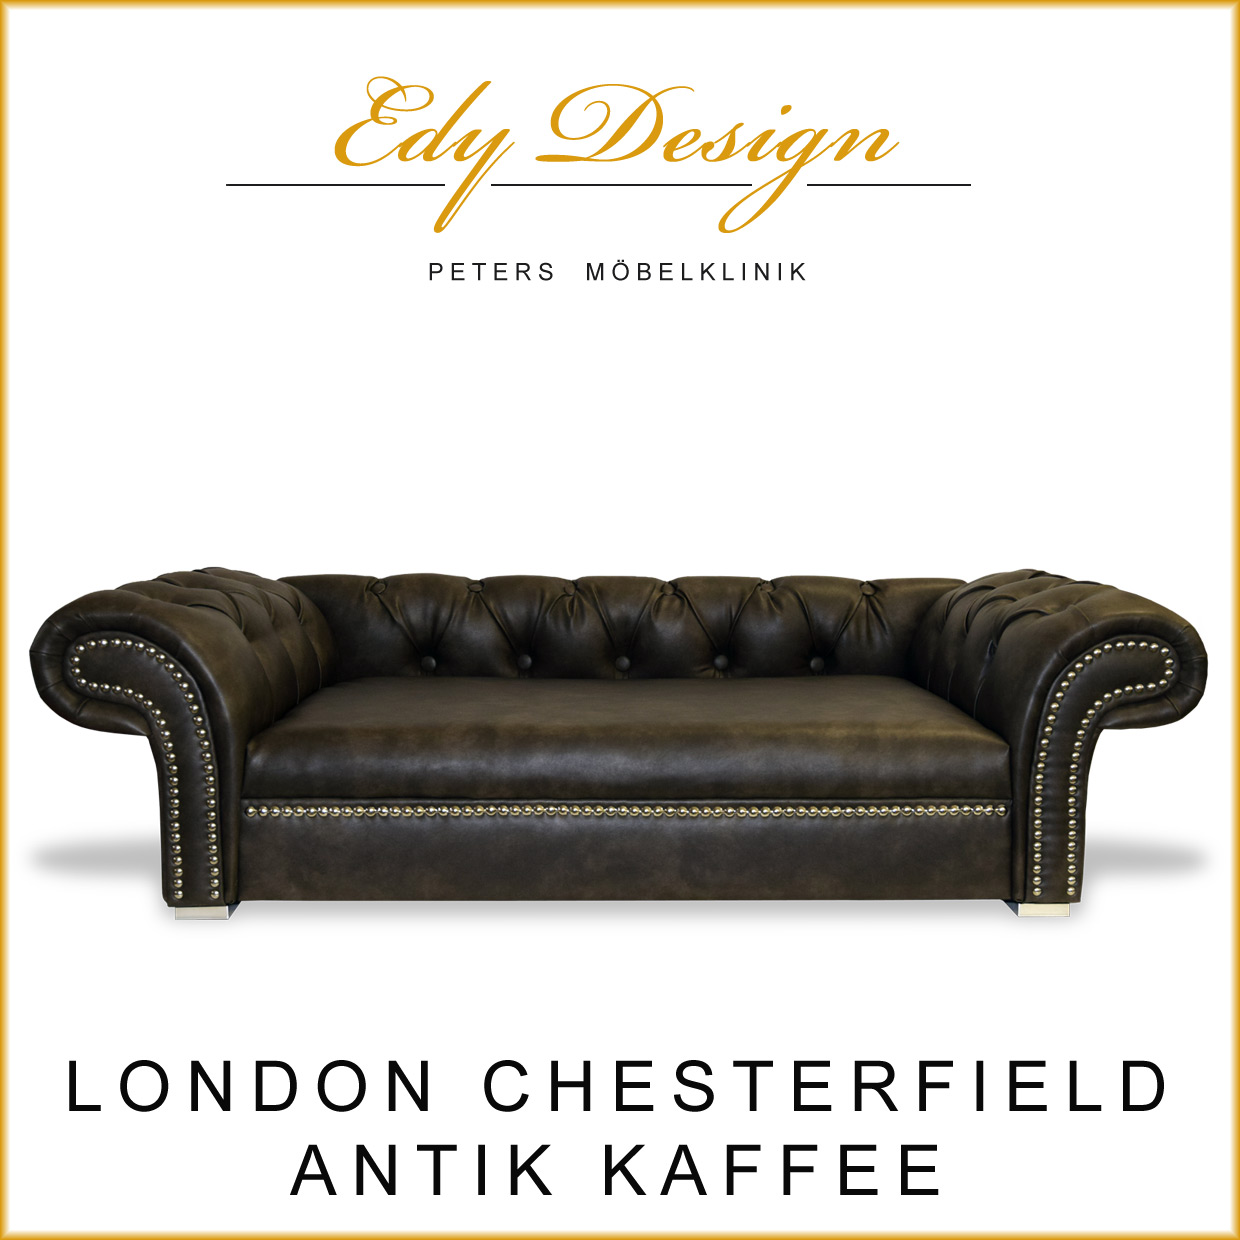 Xxl Chesterfield Sofa Hundesofa London Chesterfield Antik Kaffee Hundebett Xl